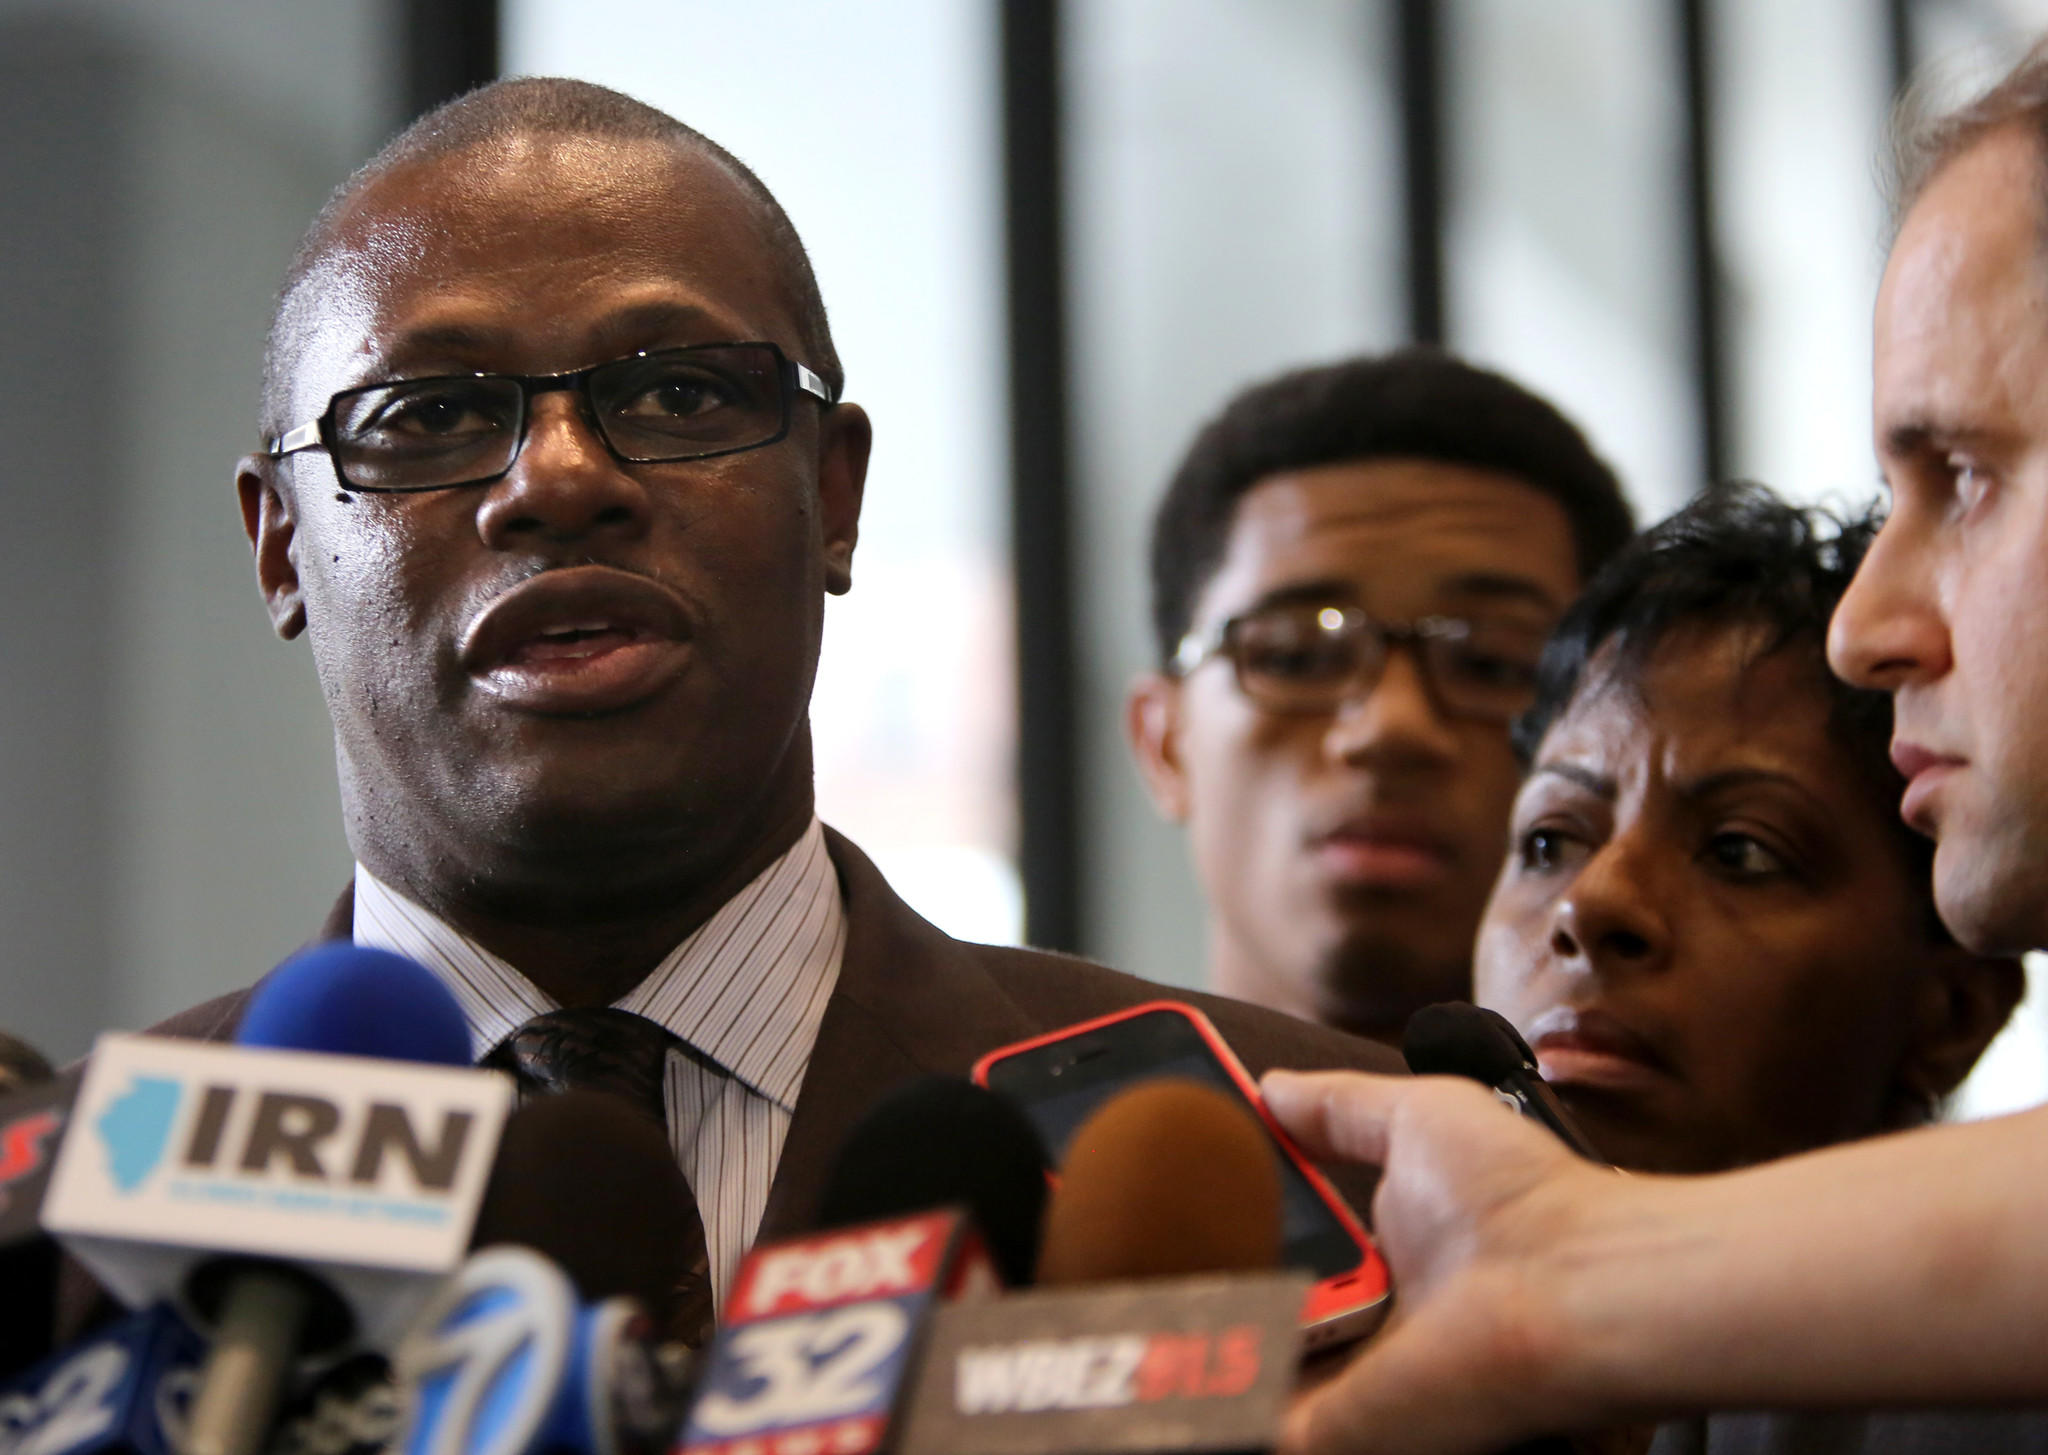 State Rep. Derrick Smith speaks to reporters in the Dirksen U.S. Courthouse following his conviction for pocketing $7,000 in a cash bribe in the days before he won the Democratic primary in 2012.